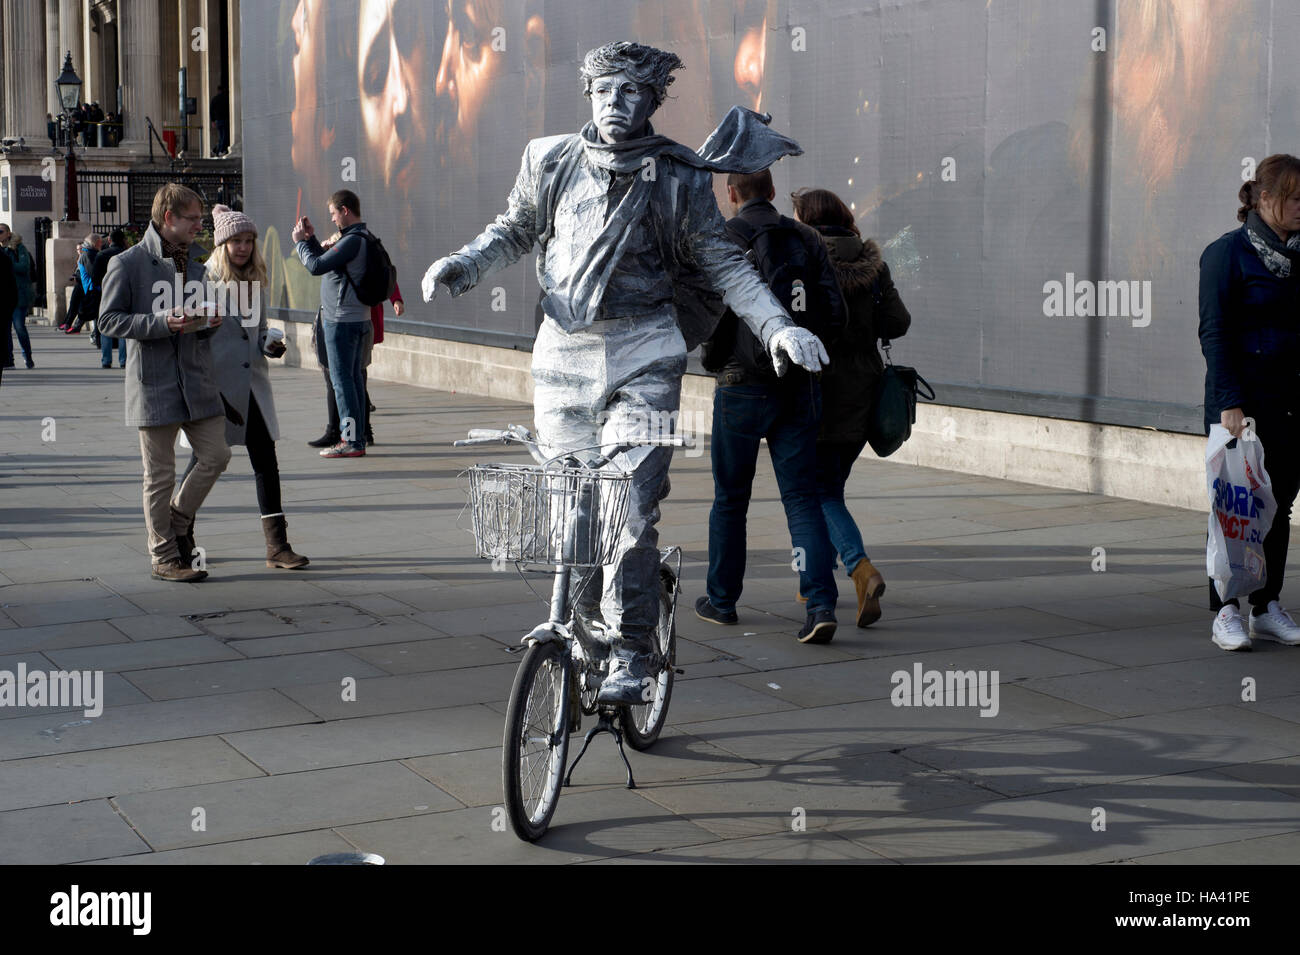 National Gallery, Trafalgar Square. Mime artist on a bicycle and passers-by Stock Photo